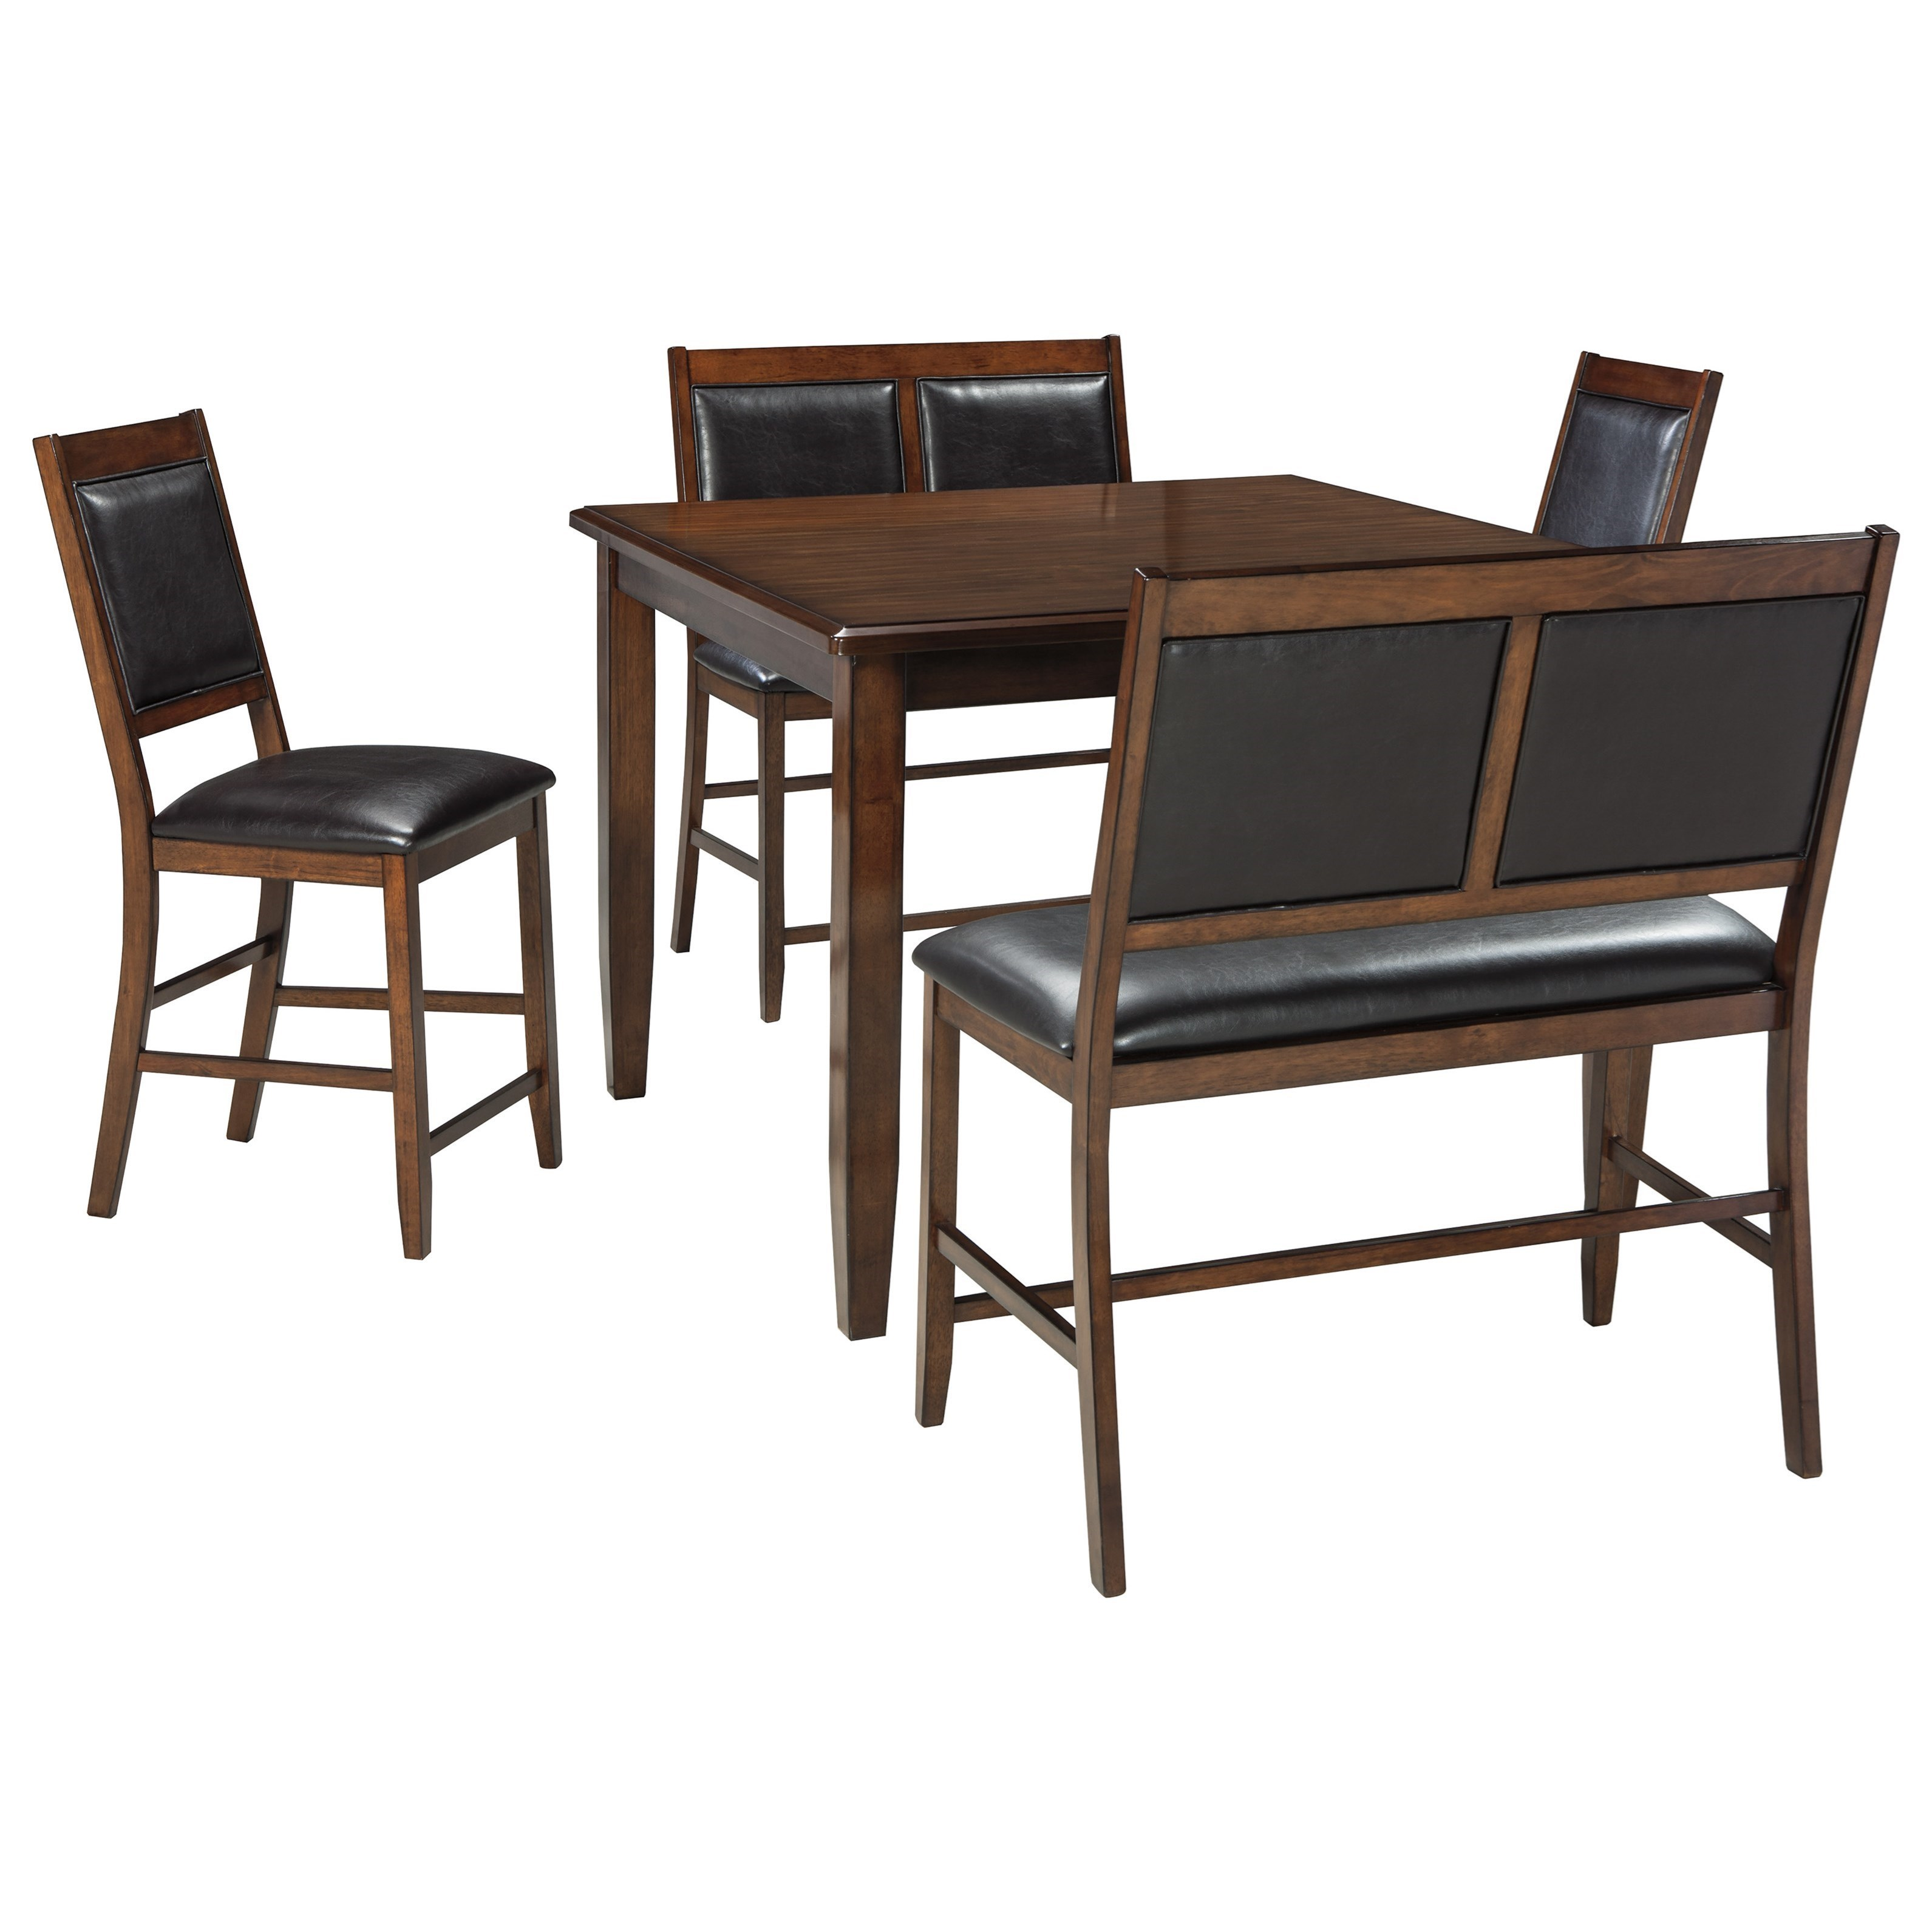 Signature Design By Ashley Meredy 5 Piece Dining Room Counter Table Set  With 2 Benches   John V Schultz Furniture   Table U0026 Chair Set With Bench